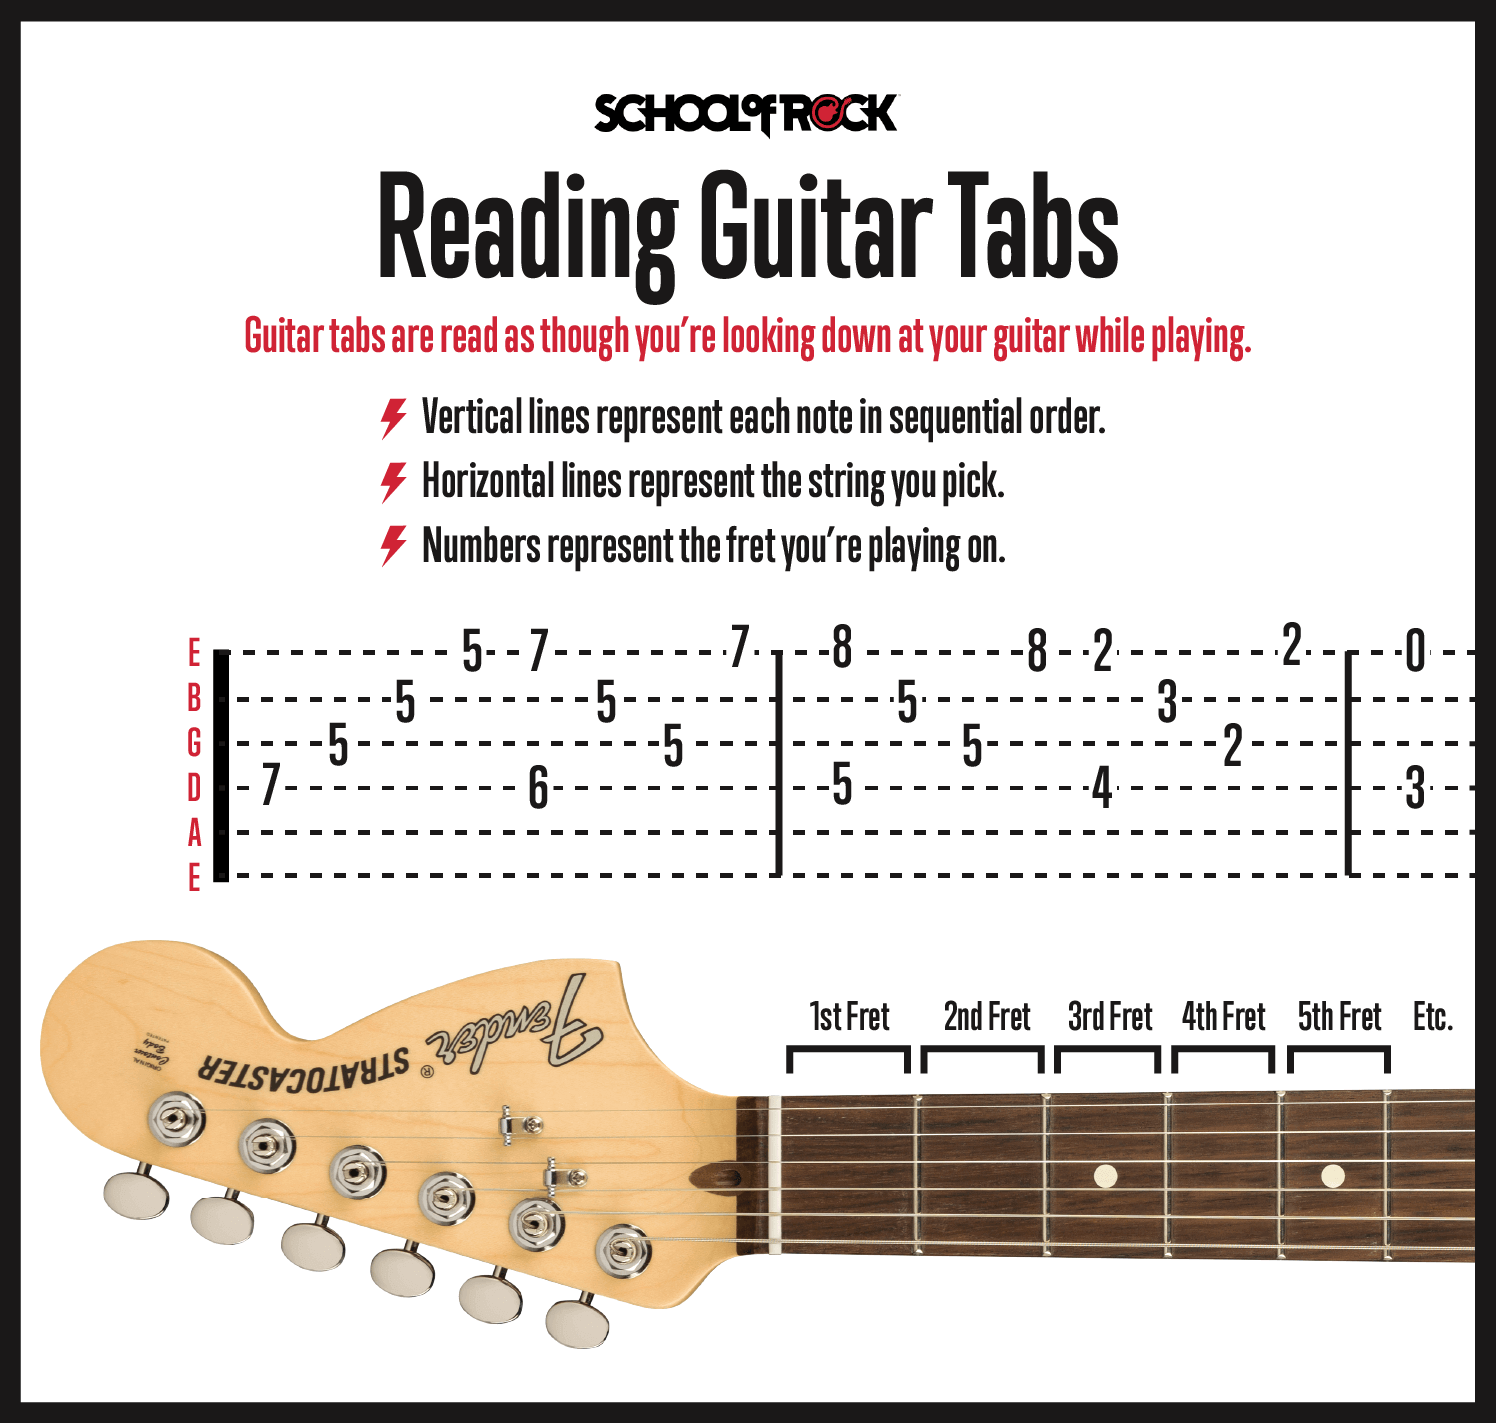 Reading guitar tabs